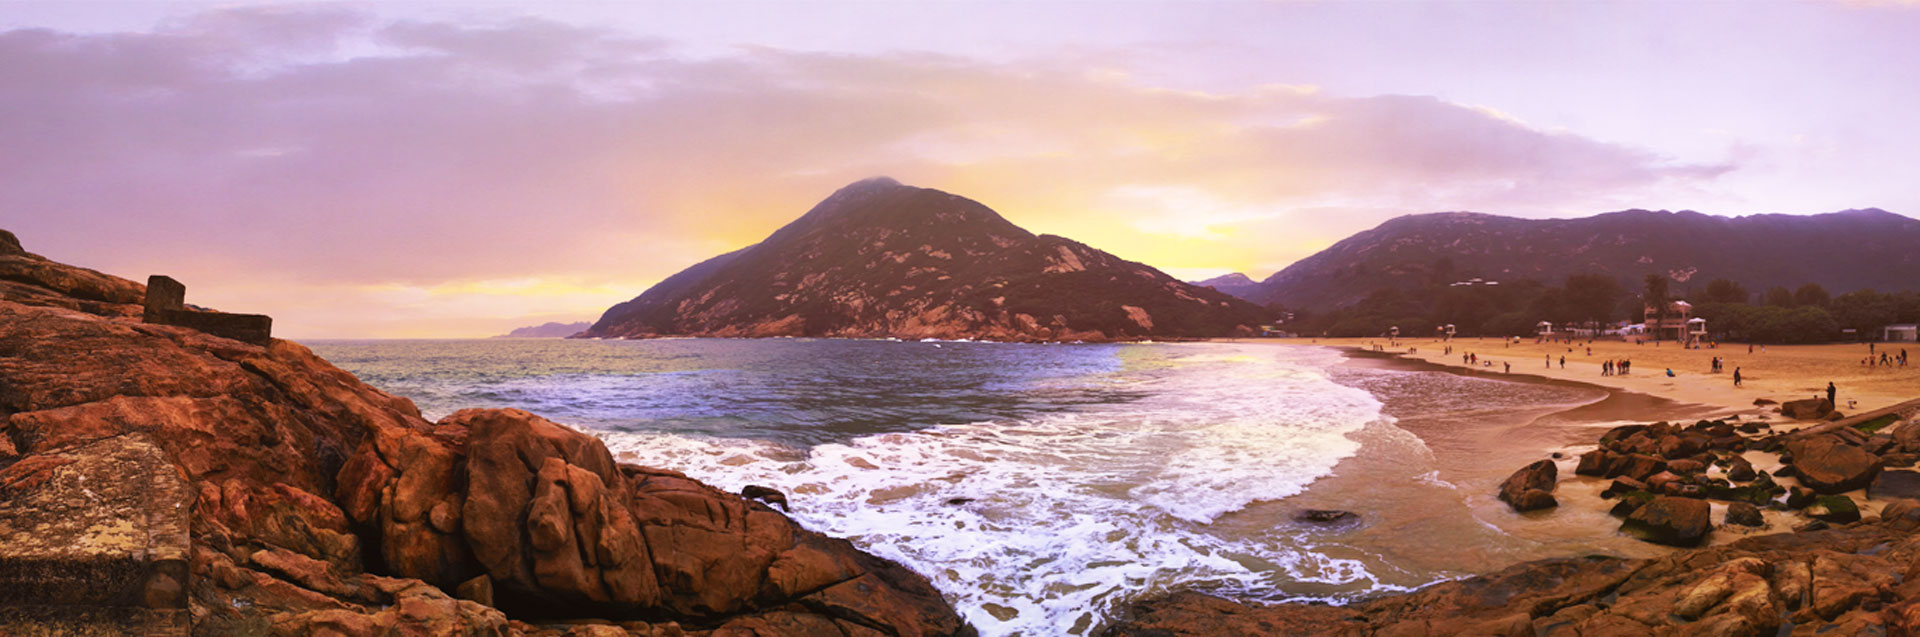 Sunsetting behind the mountains with a view of the waves coming in on the beach